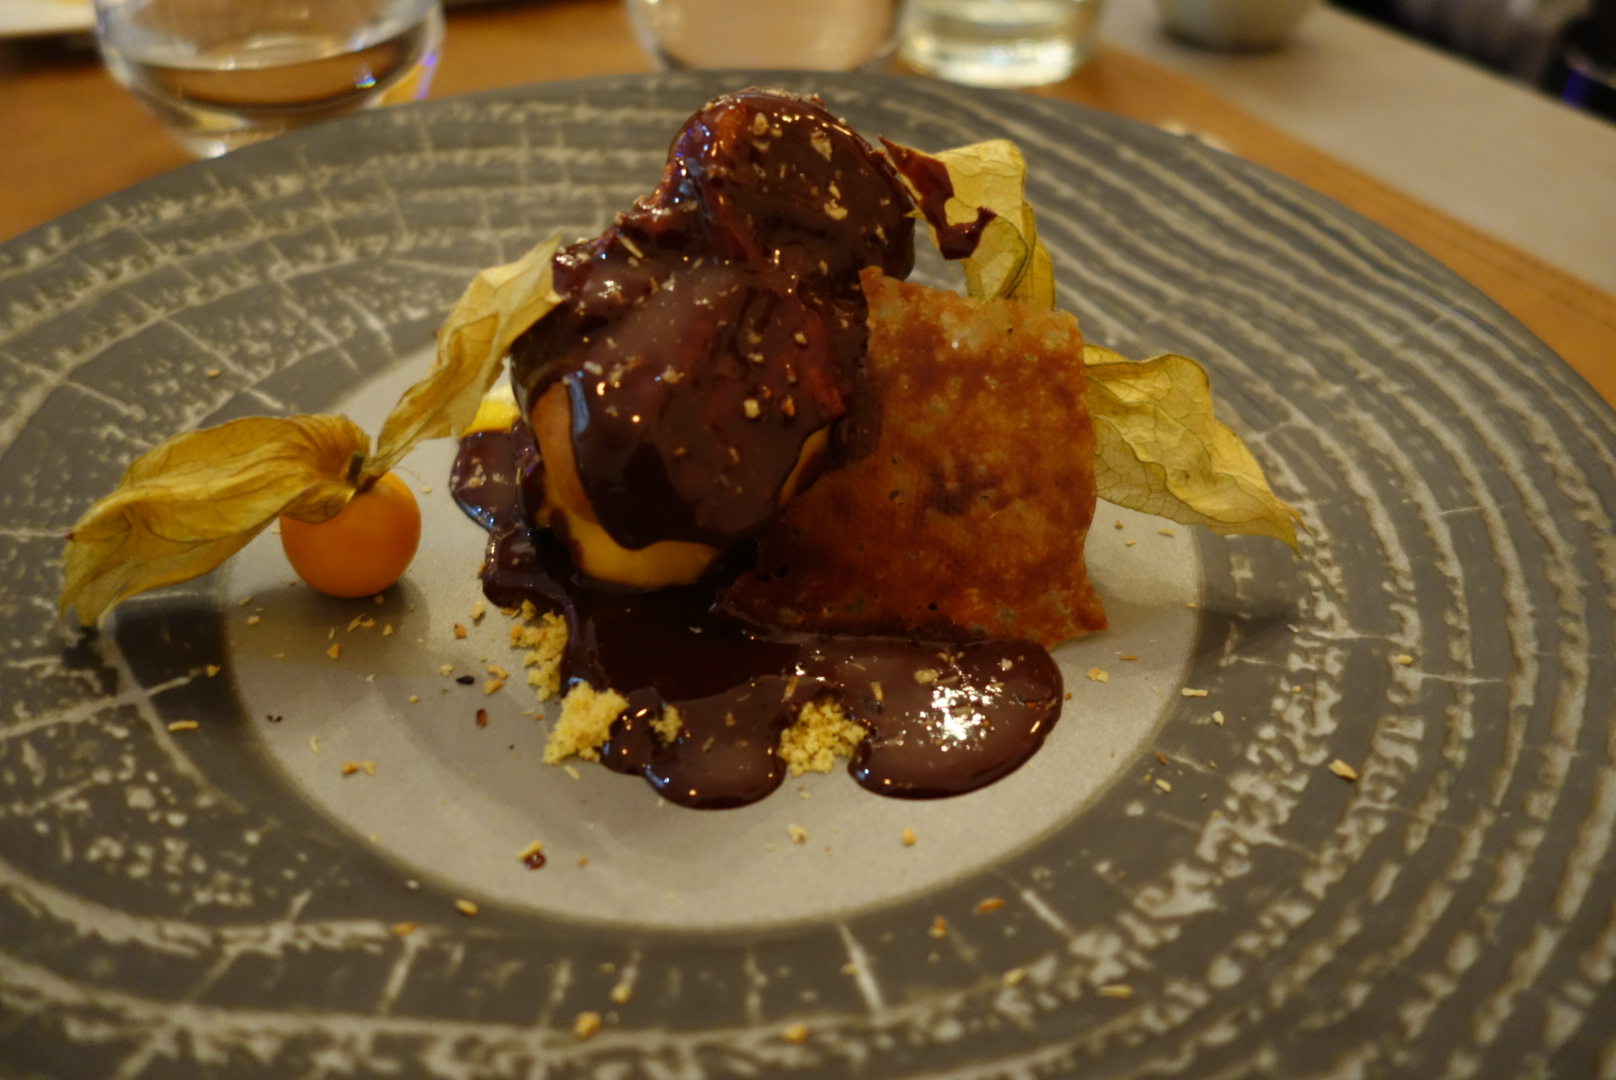 Profiterole with homemade mango ice cream and chocolate sauce